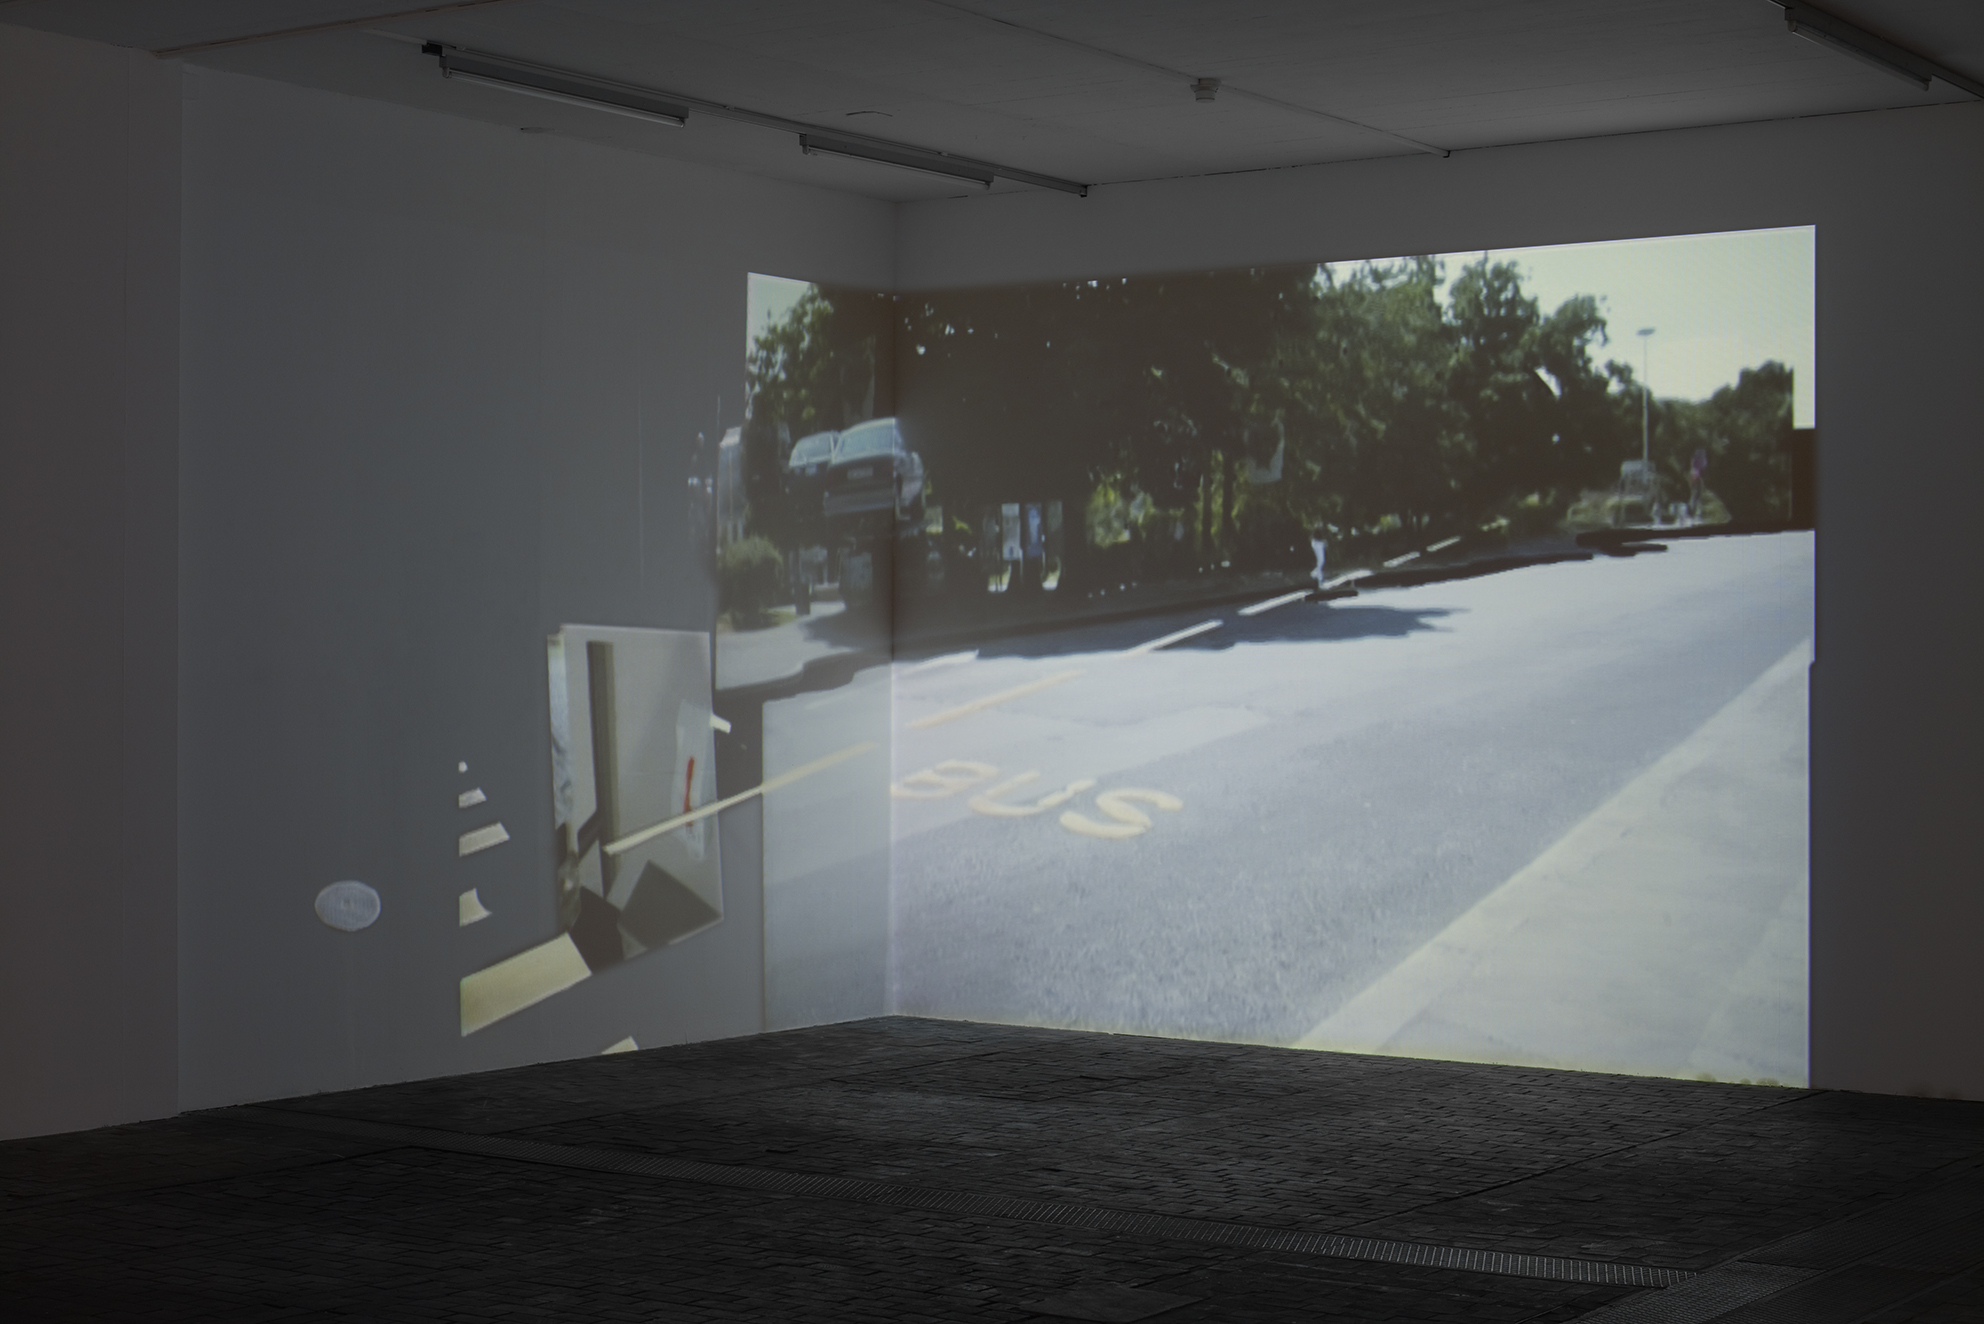 Circus, video installation SD, 4/3, 576i, 2 angled projections, 5'23'', loop, 2004, in collaboration with Swann Thommen, © David Gagnebin-de bons